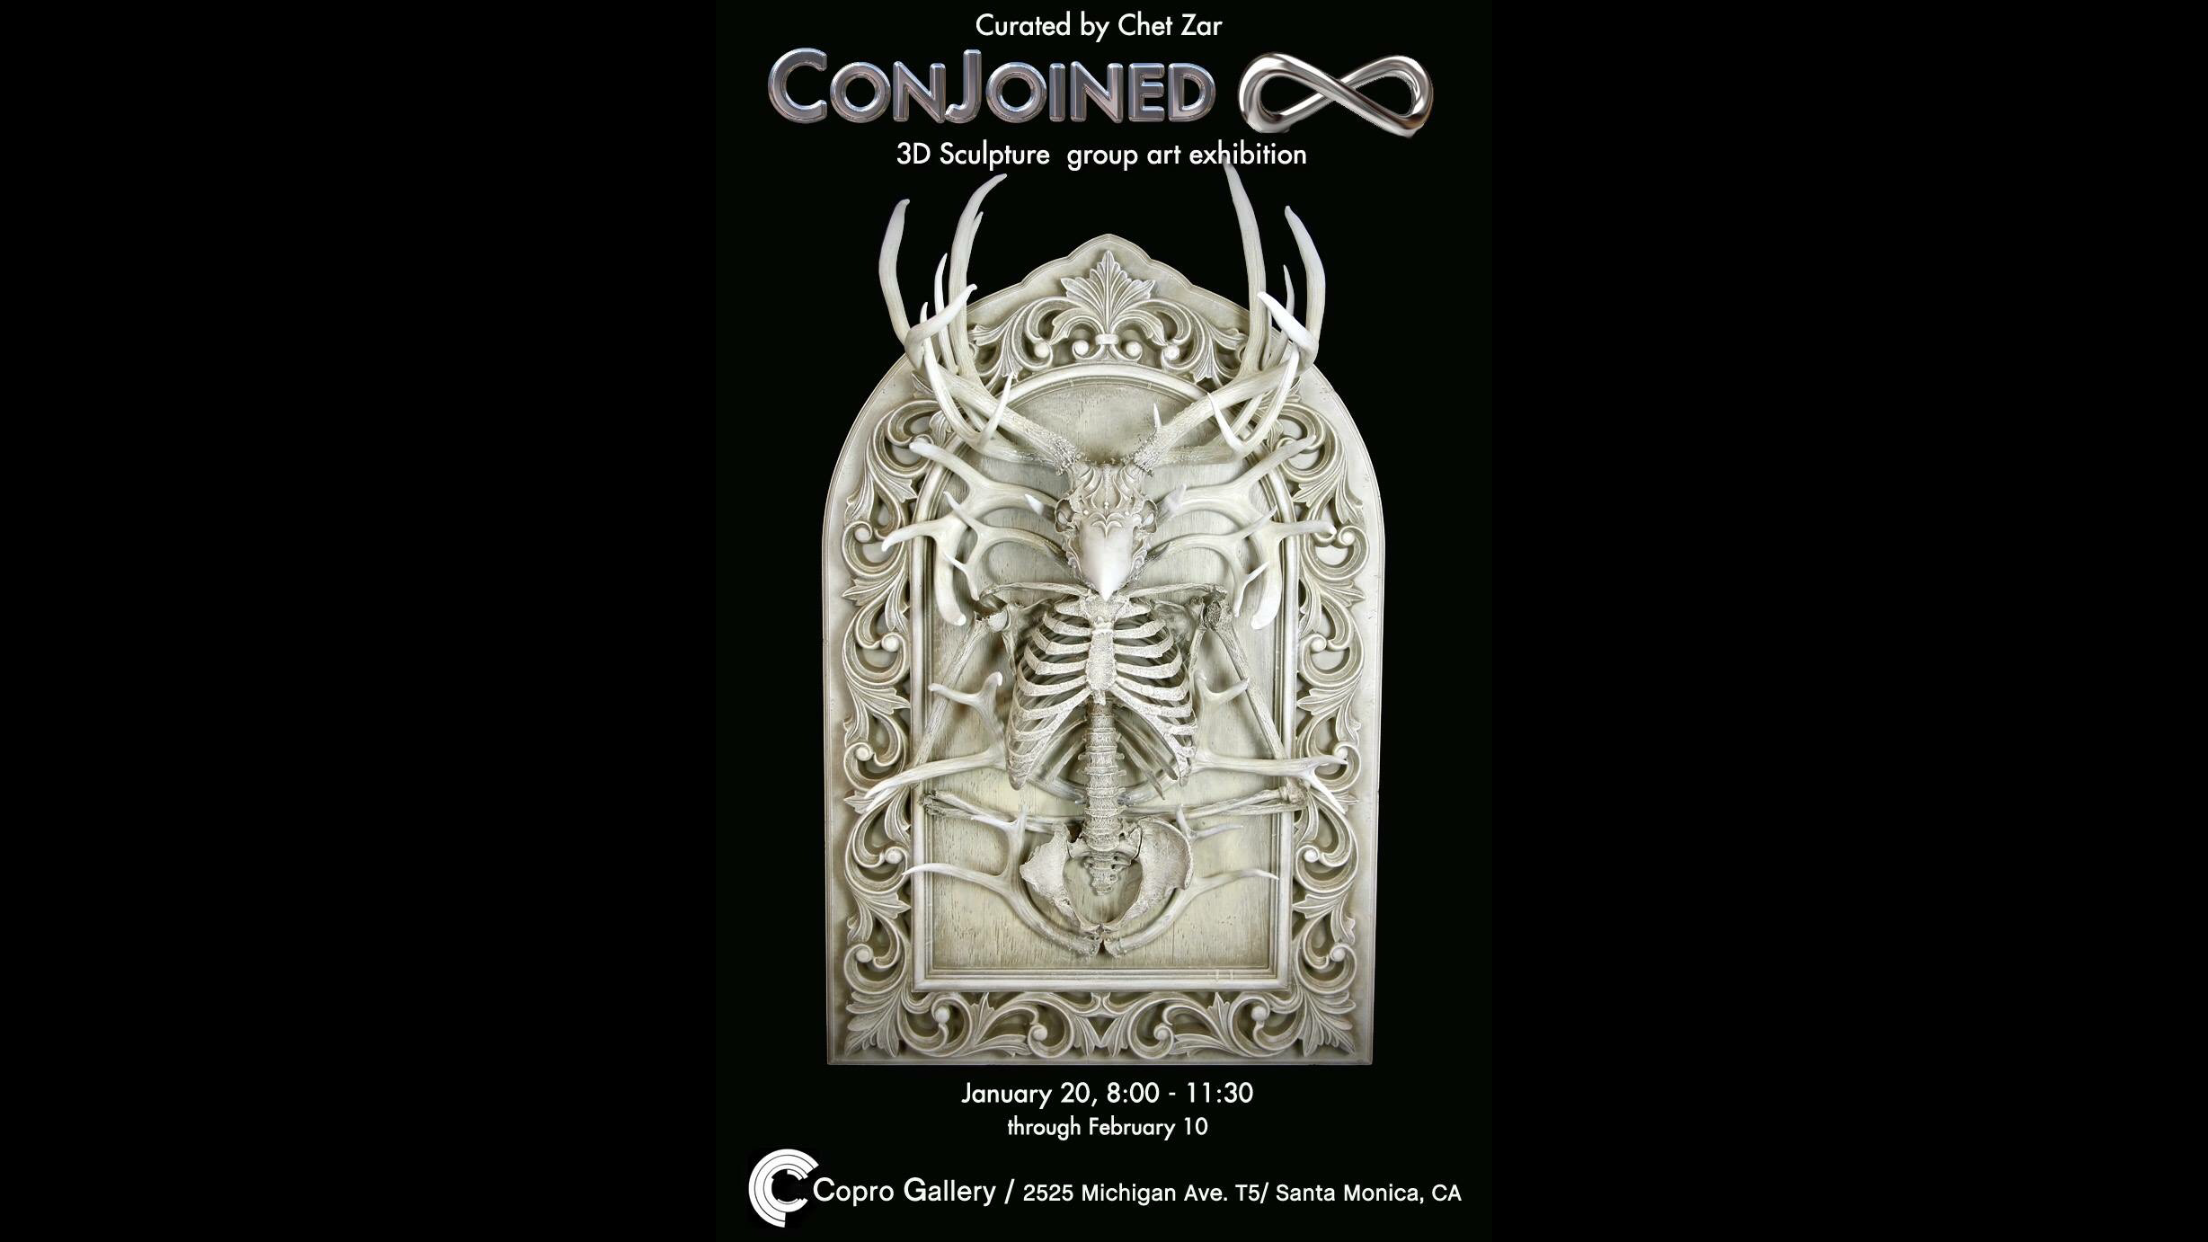 'Conjoined 8' official poster featuring sculpture art by Chris Haas